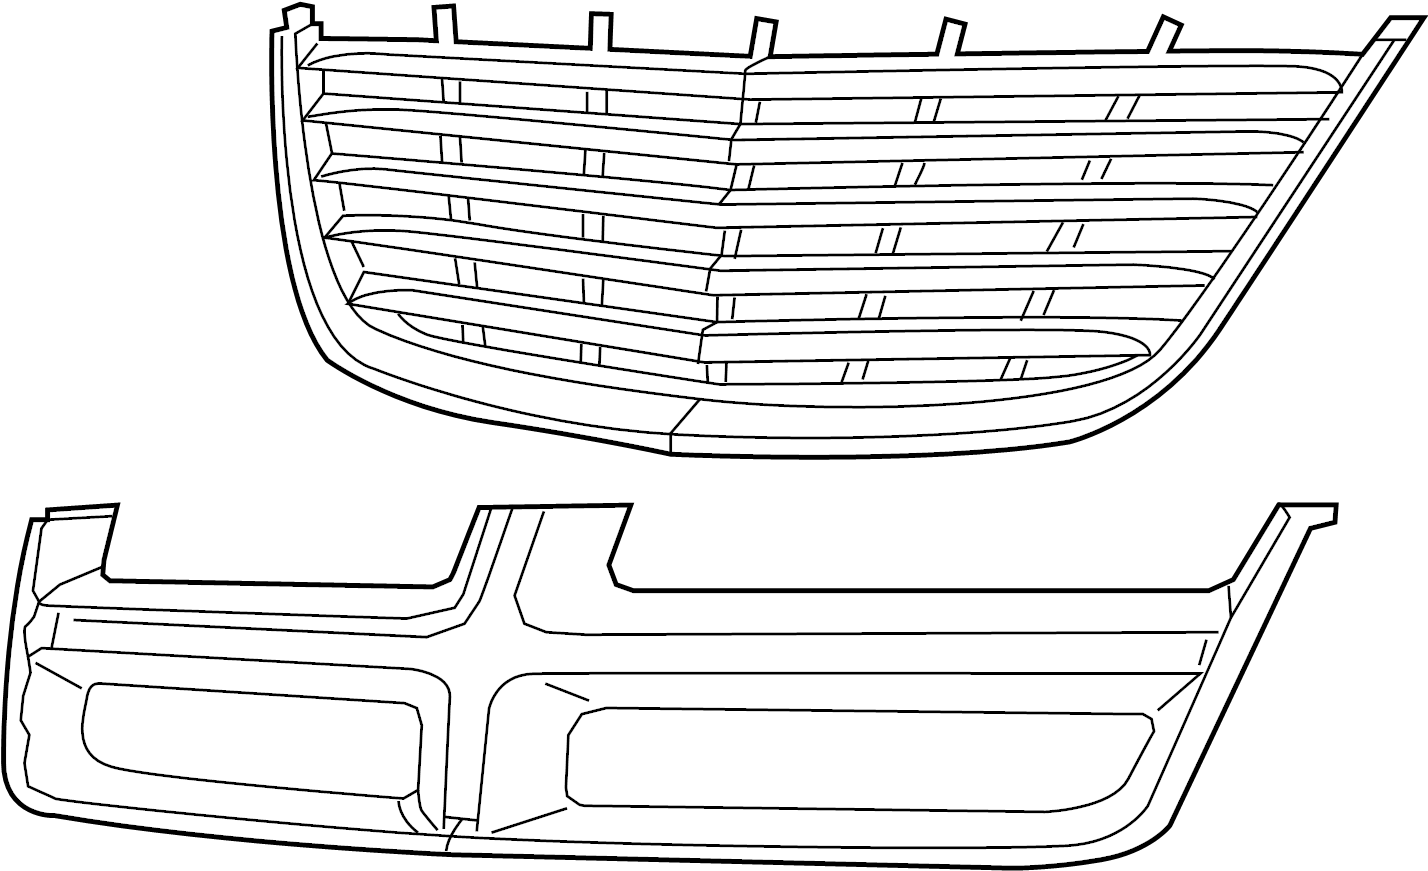 Grille Radiator Grilles Made By Chrysler Ad